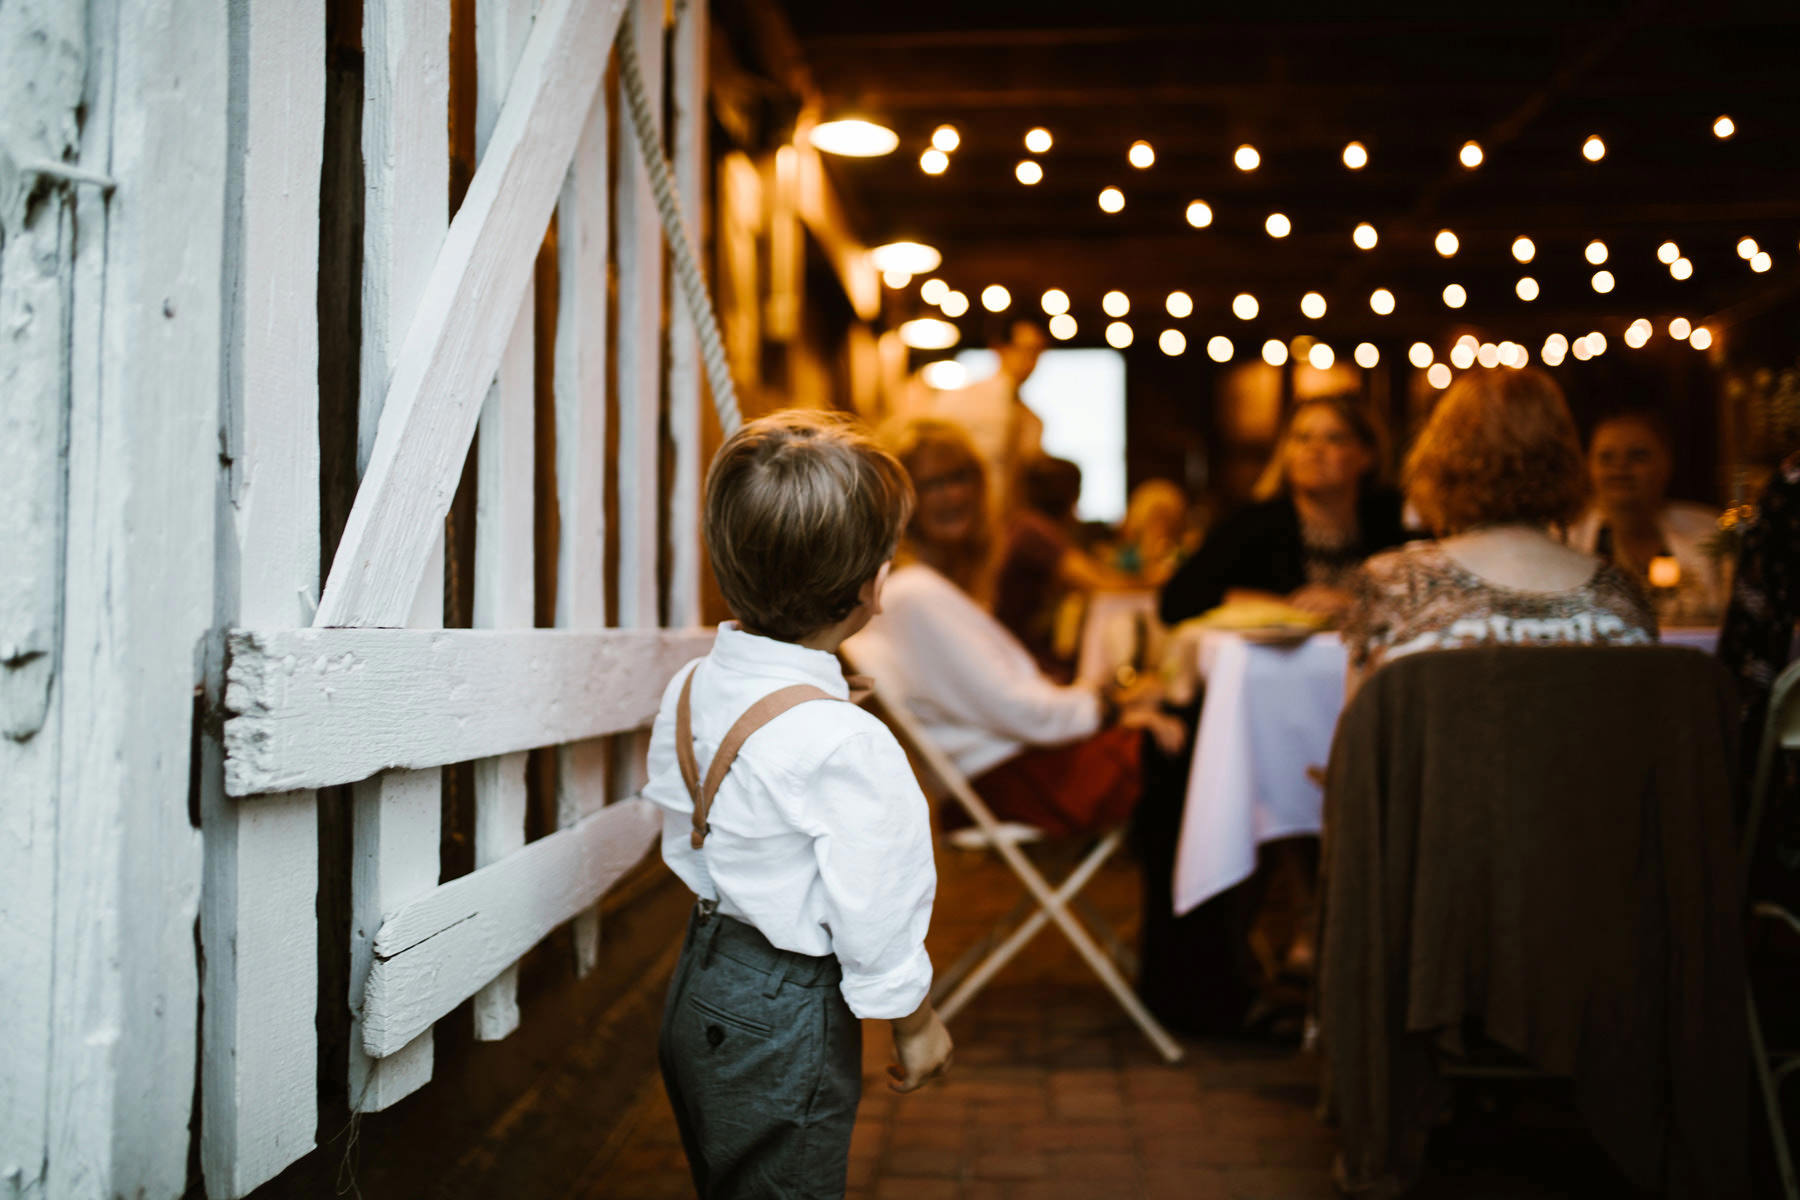 92_Alldredge Orchards Outdoor Wedding Kansas City, Missouri_Kindling Wedding Photography.JPG